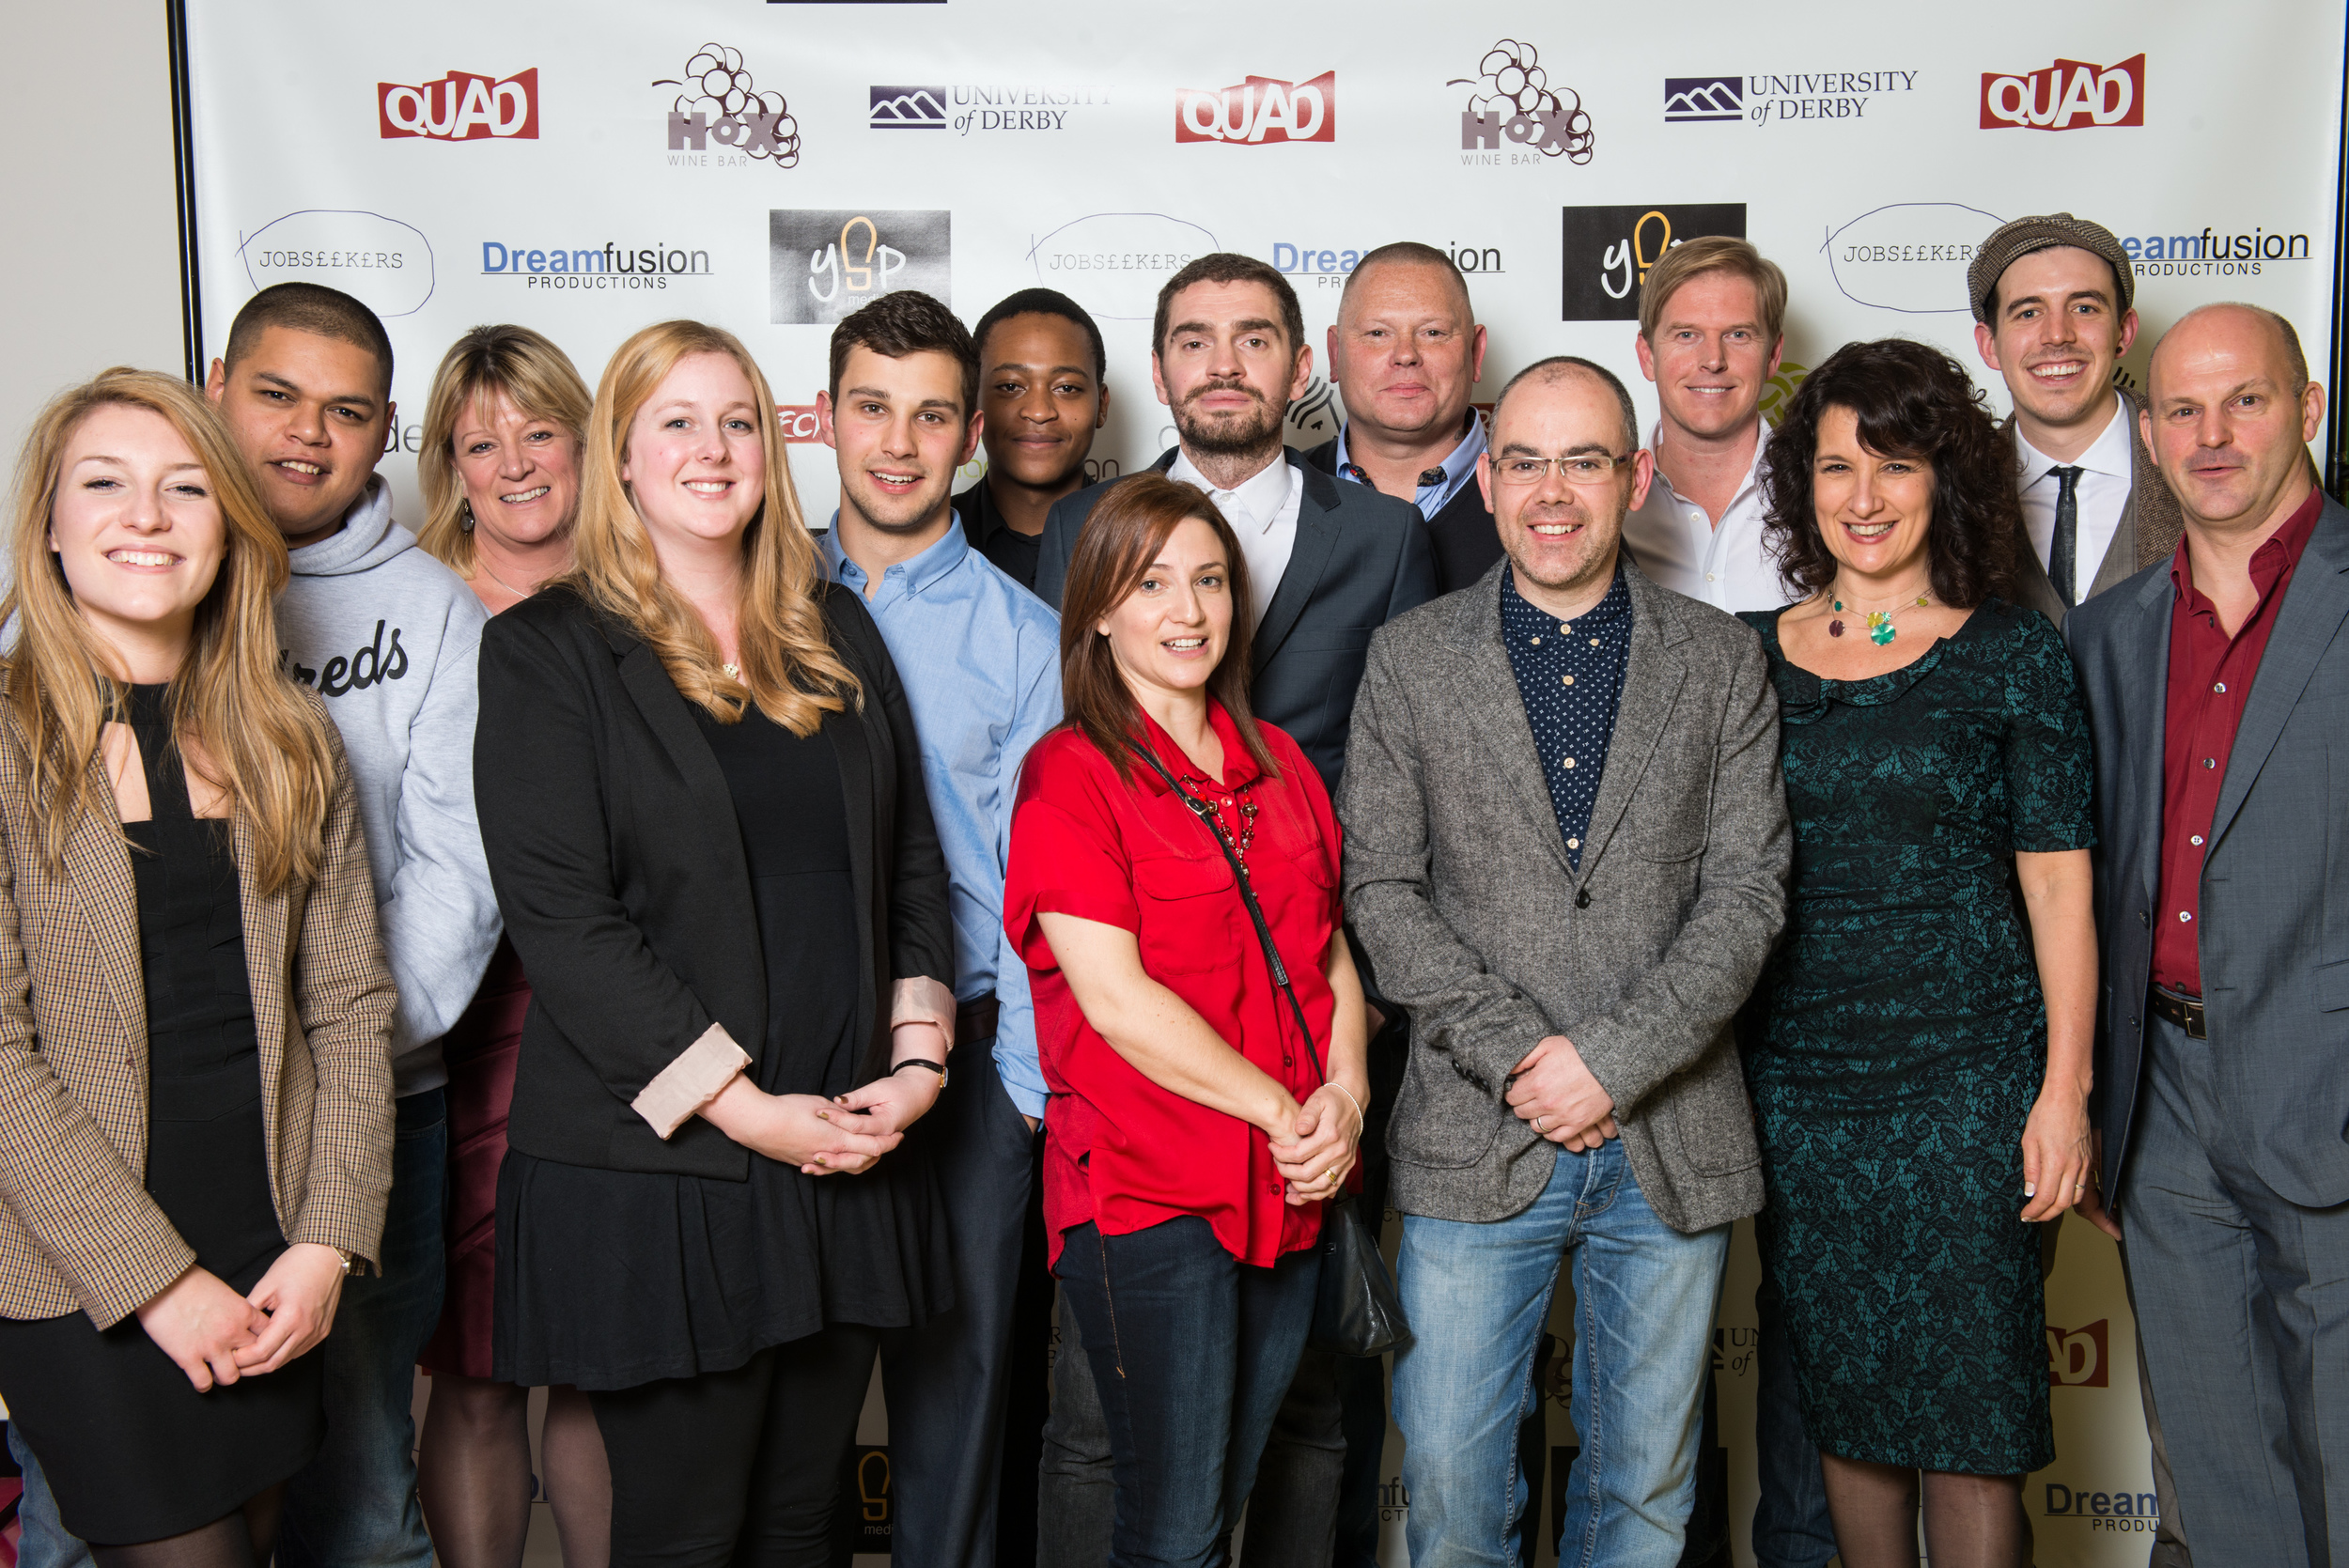 The Jobseekers Cast (From L to R): Lucy Varney, Ed Kear, Elli Mackenzie, Daisy Leverington, Adam Horvath, Khulekani Mnisi, Shelley Draper, Mark Drake, Shane Alexander, Lee Toomes, Mark Pardner, Tina Harris, Joseph Maudsley & Andy Barrow.